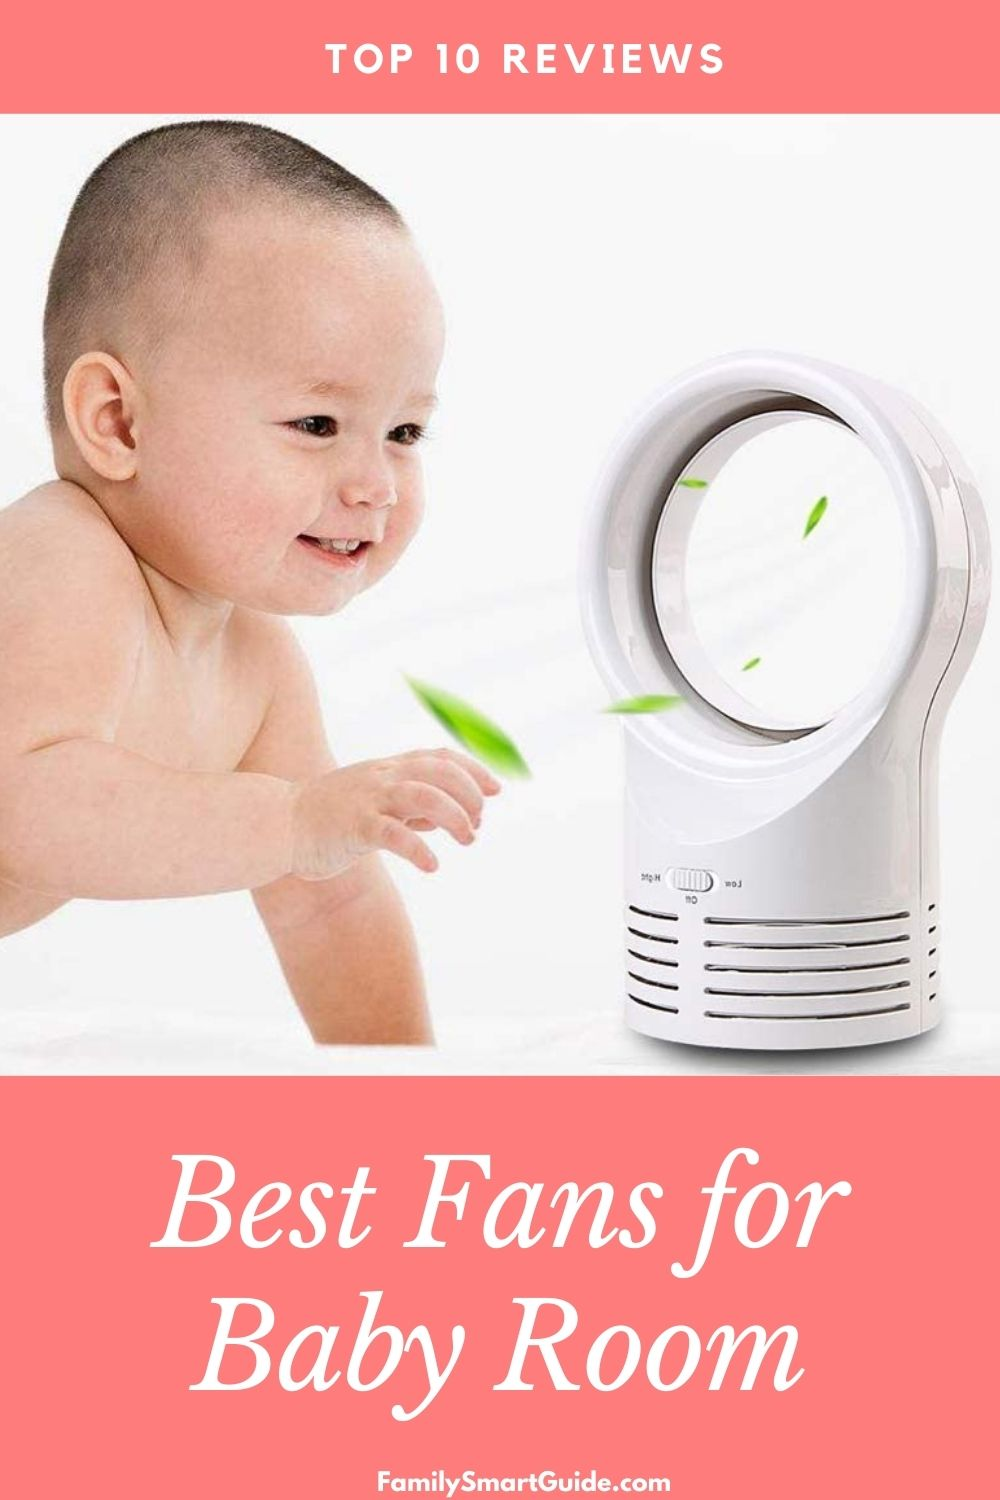 Top 10 Best Fans For Baby Room Reviews